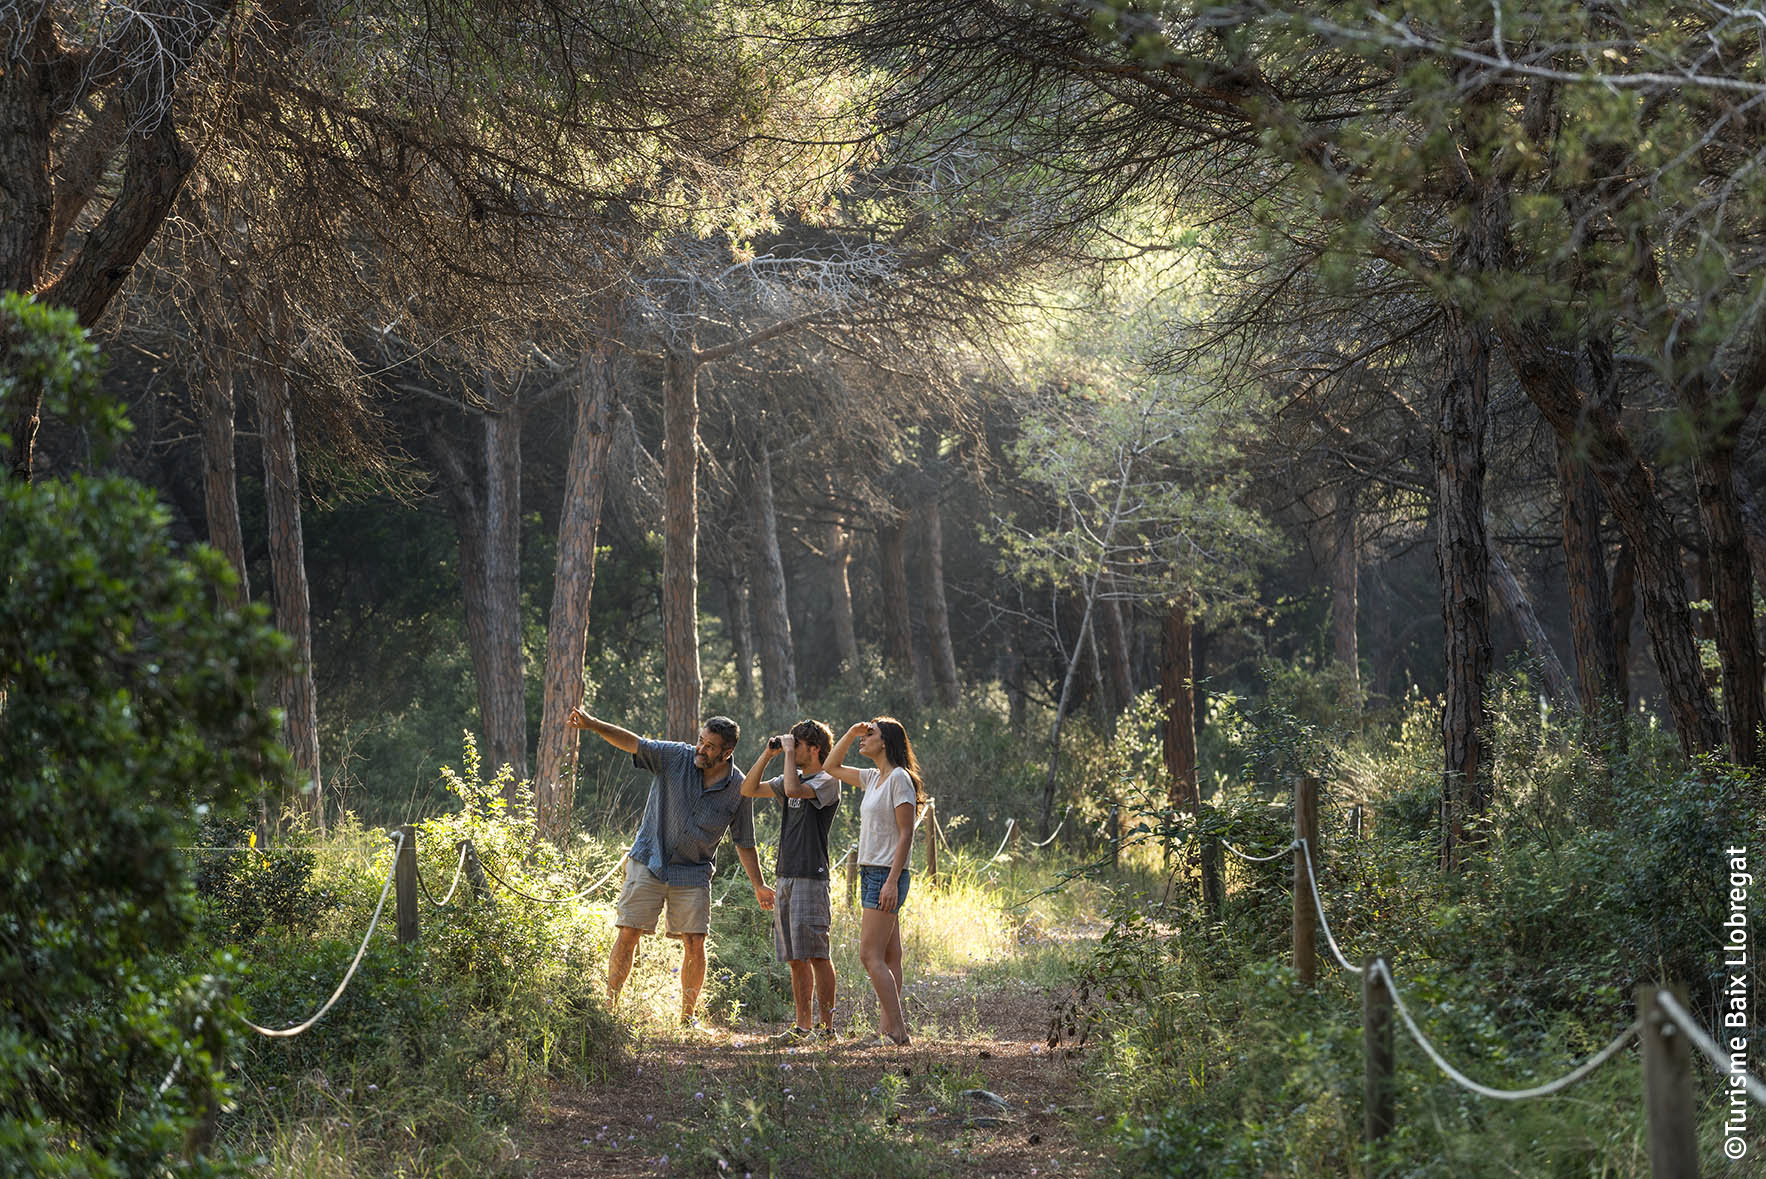 The Can Camins pine forest, one of the best preserved forest areas along the Catalan coastline.